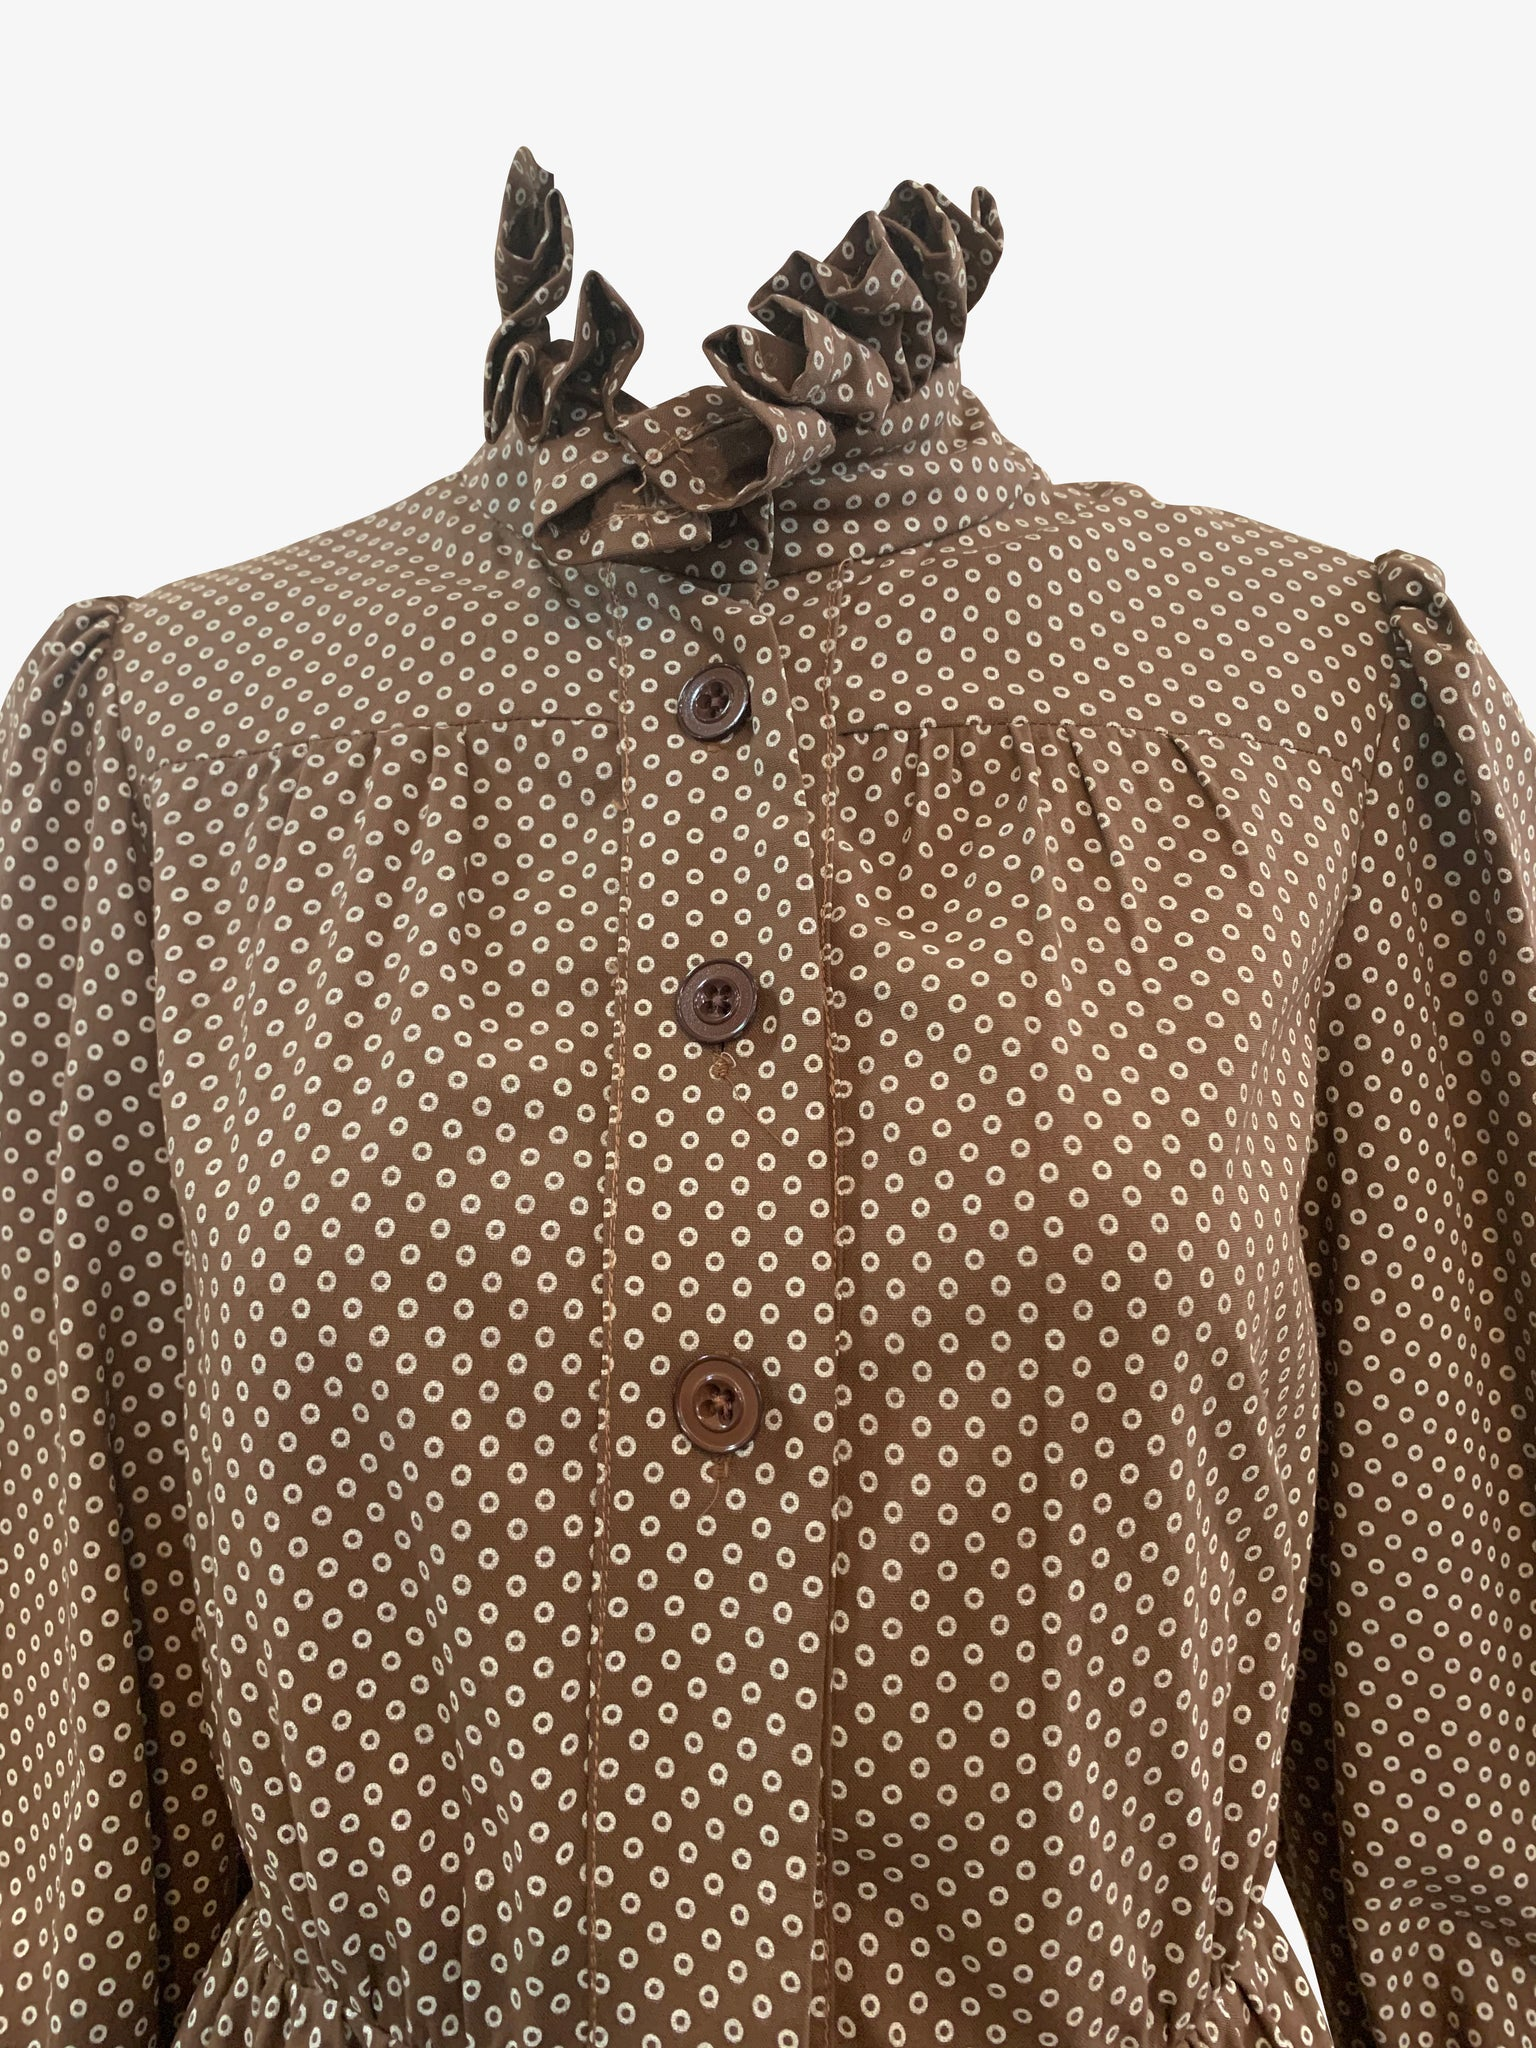 Jean Varon 70s Peasant Blouse Brown Polka Dots CLOSE UP FRONT 4 of 5